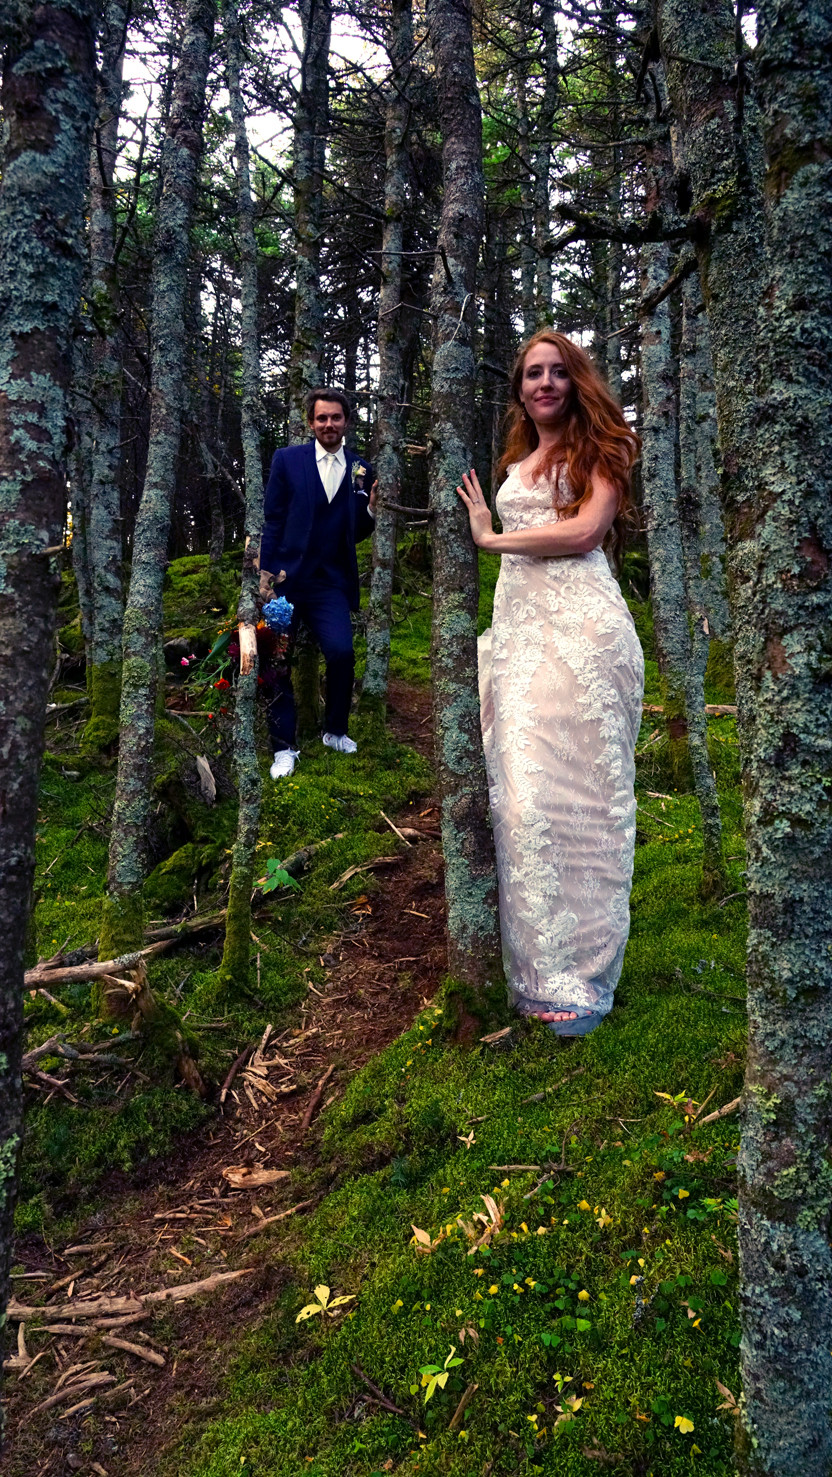 Killington Vermont wedding photographers